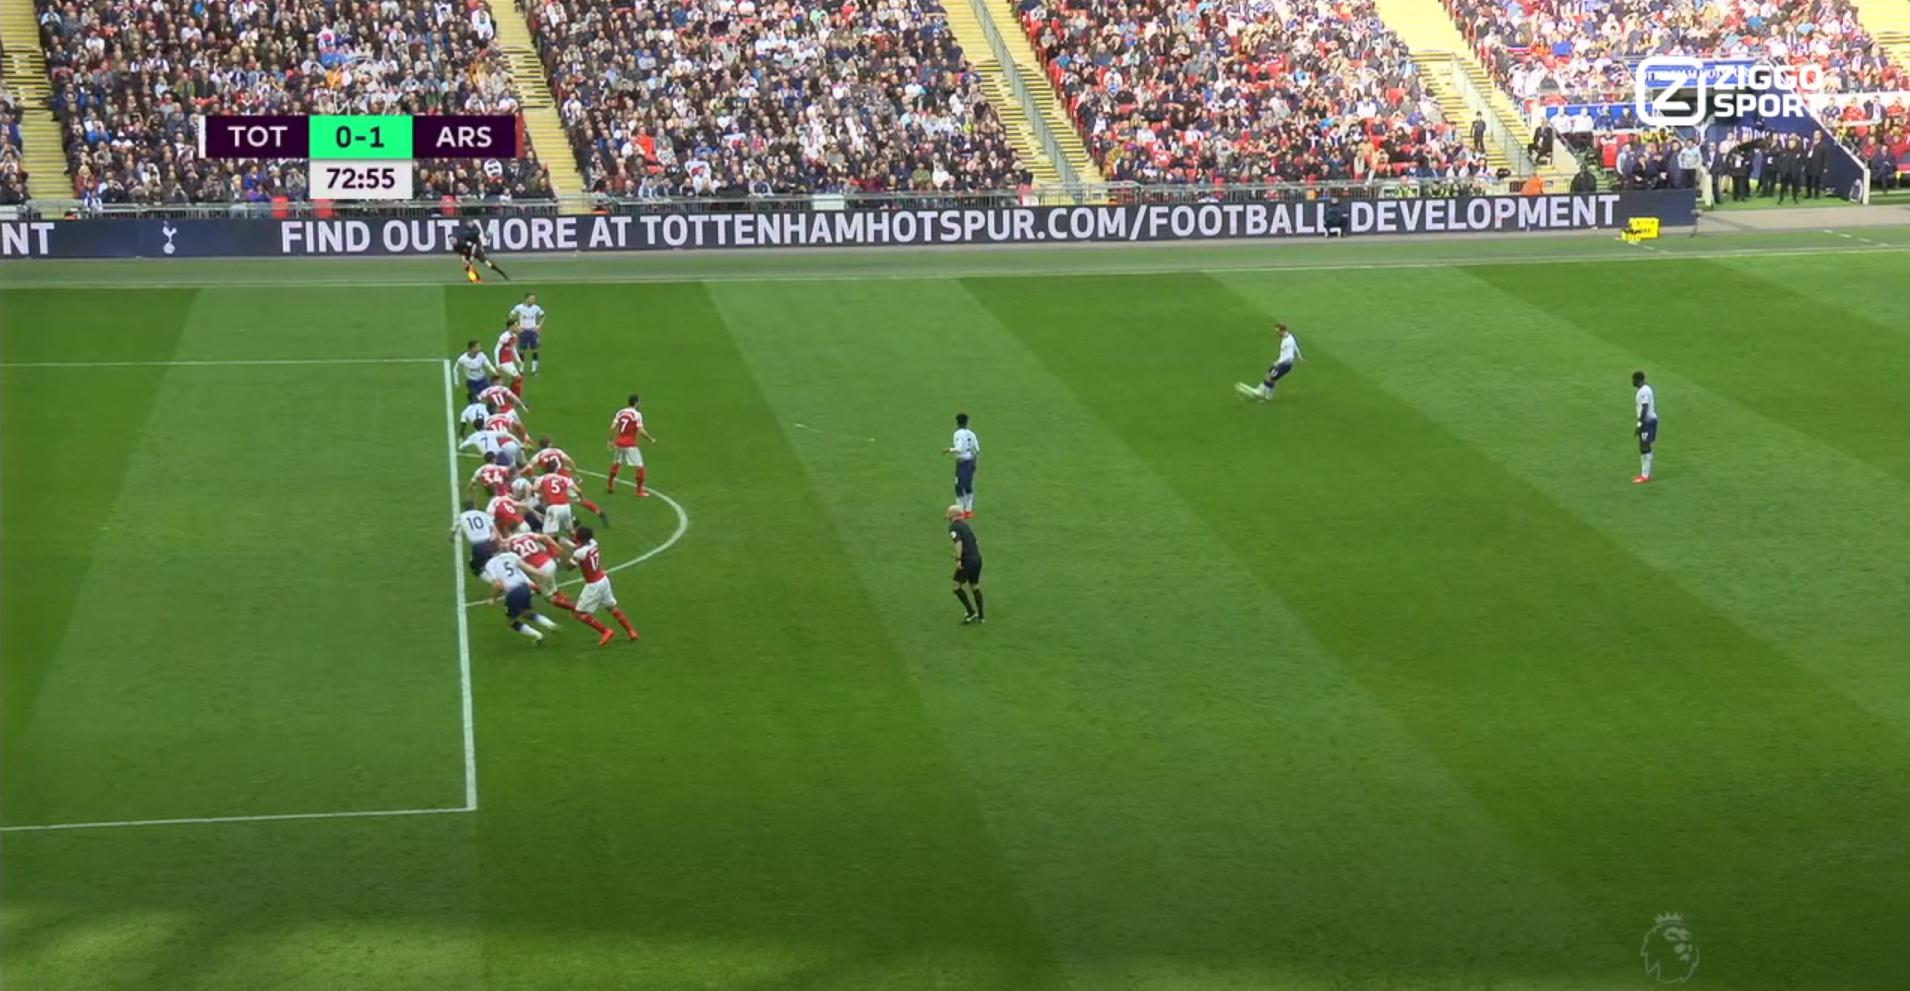 Offside before the foul